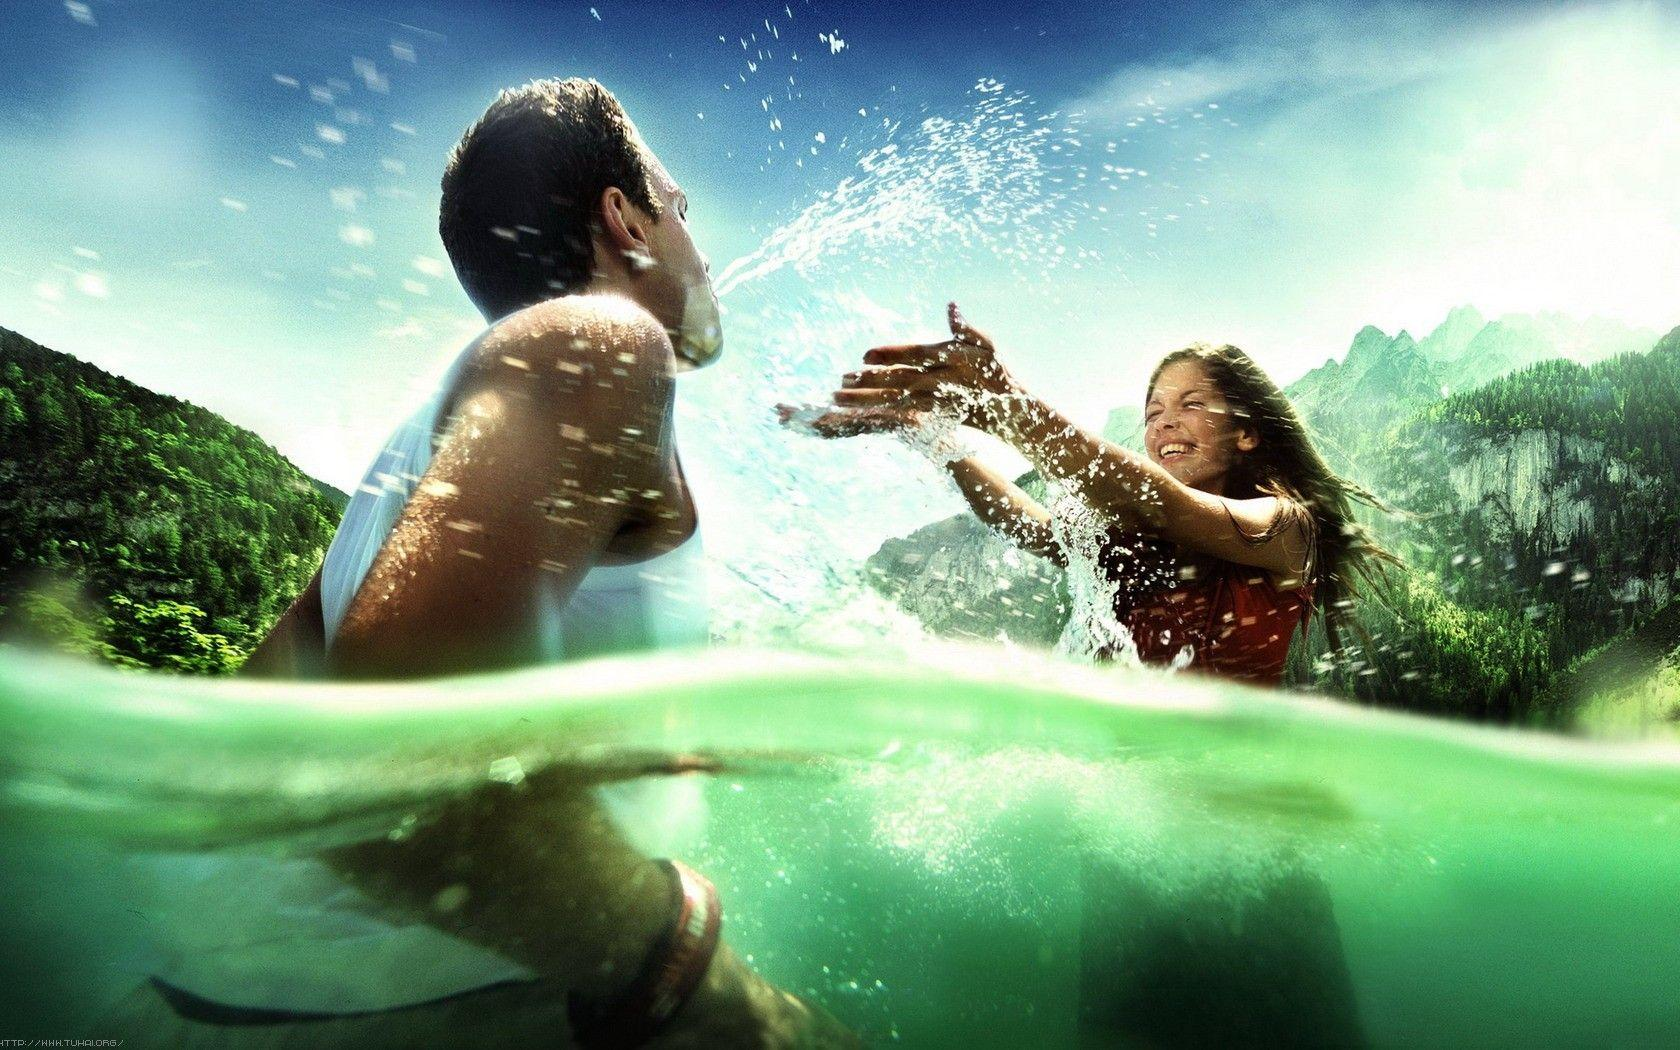 Wallpaper download couple love - Download Water Love Couples Hd Wallpapers Picture 8353 Hd